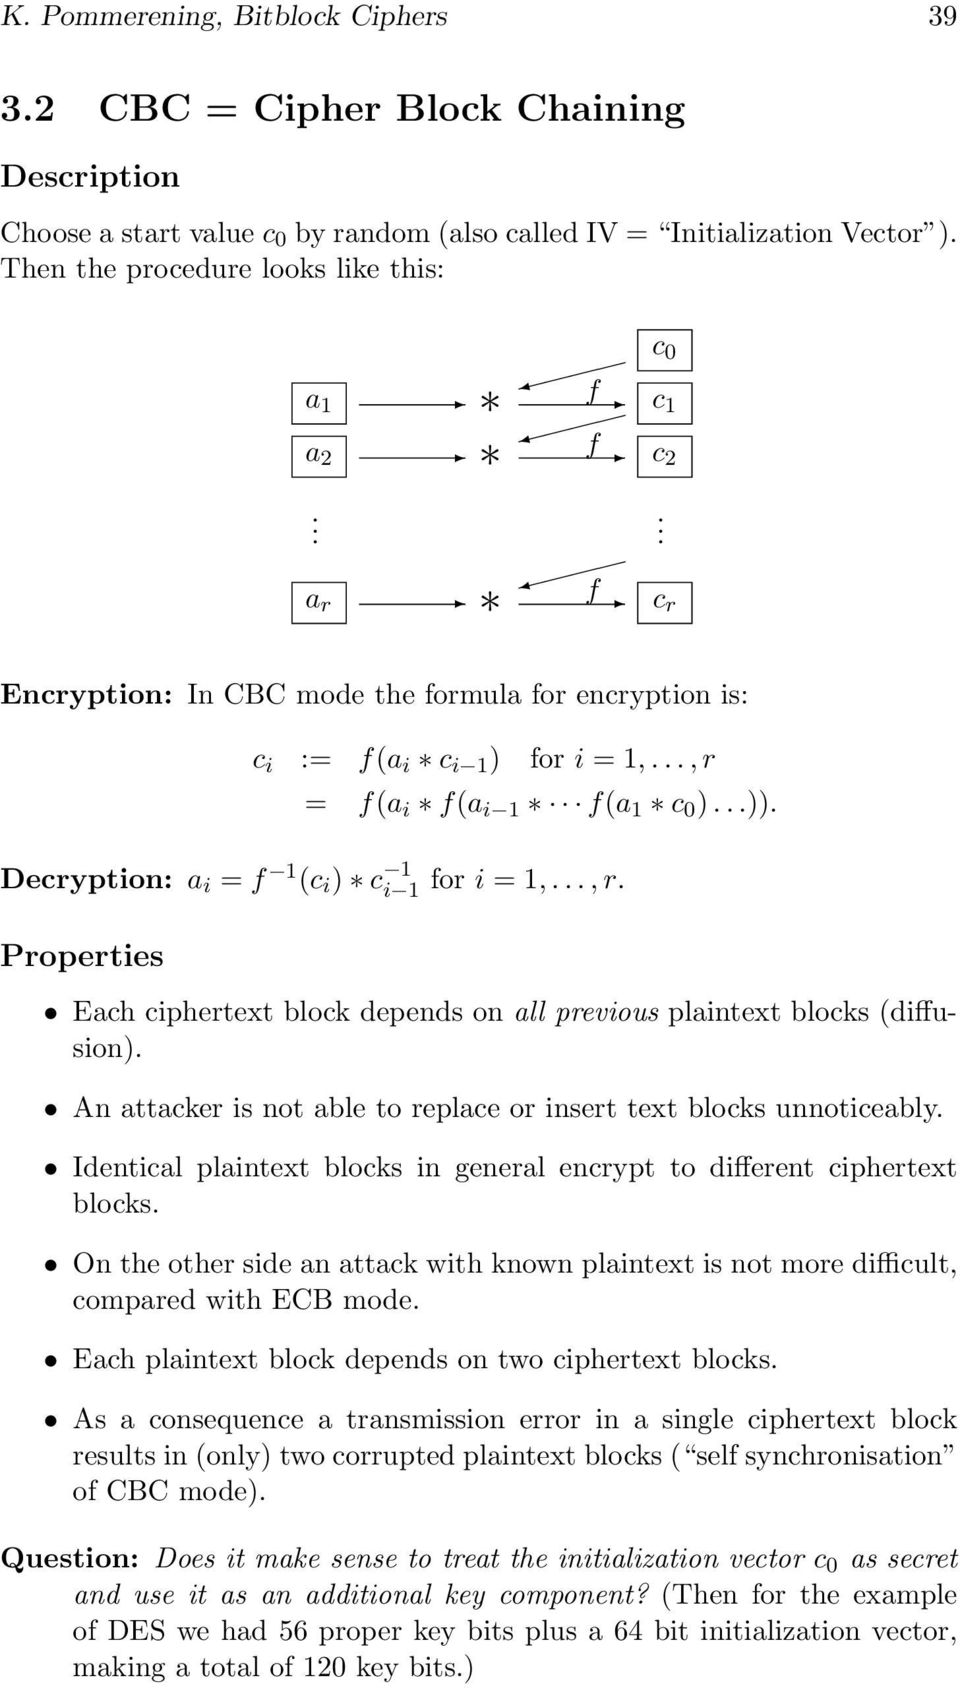 Each ciphertext block depends on all previous plaintext blocks (diffusion) An attacker is not able to replace or insert text blocks unnoticeably Identical plaintext blocks in general encrypt to